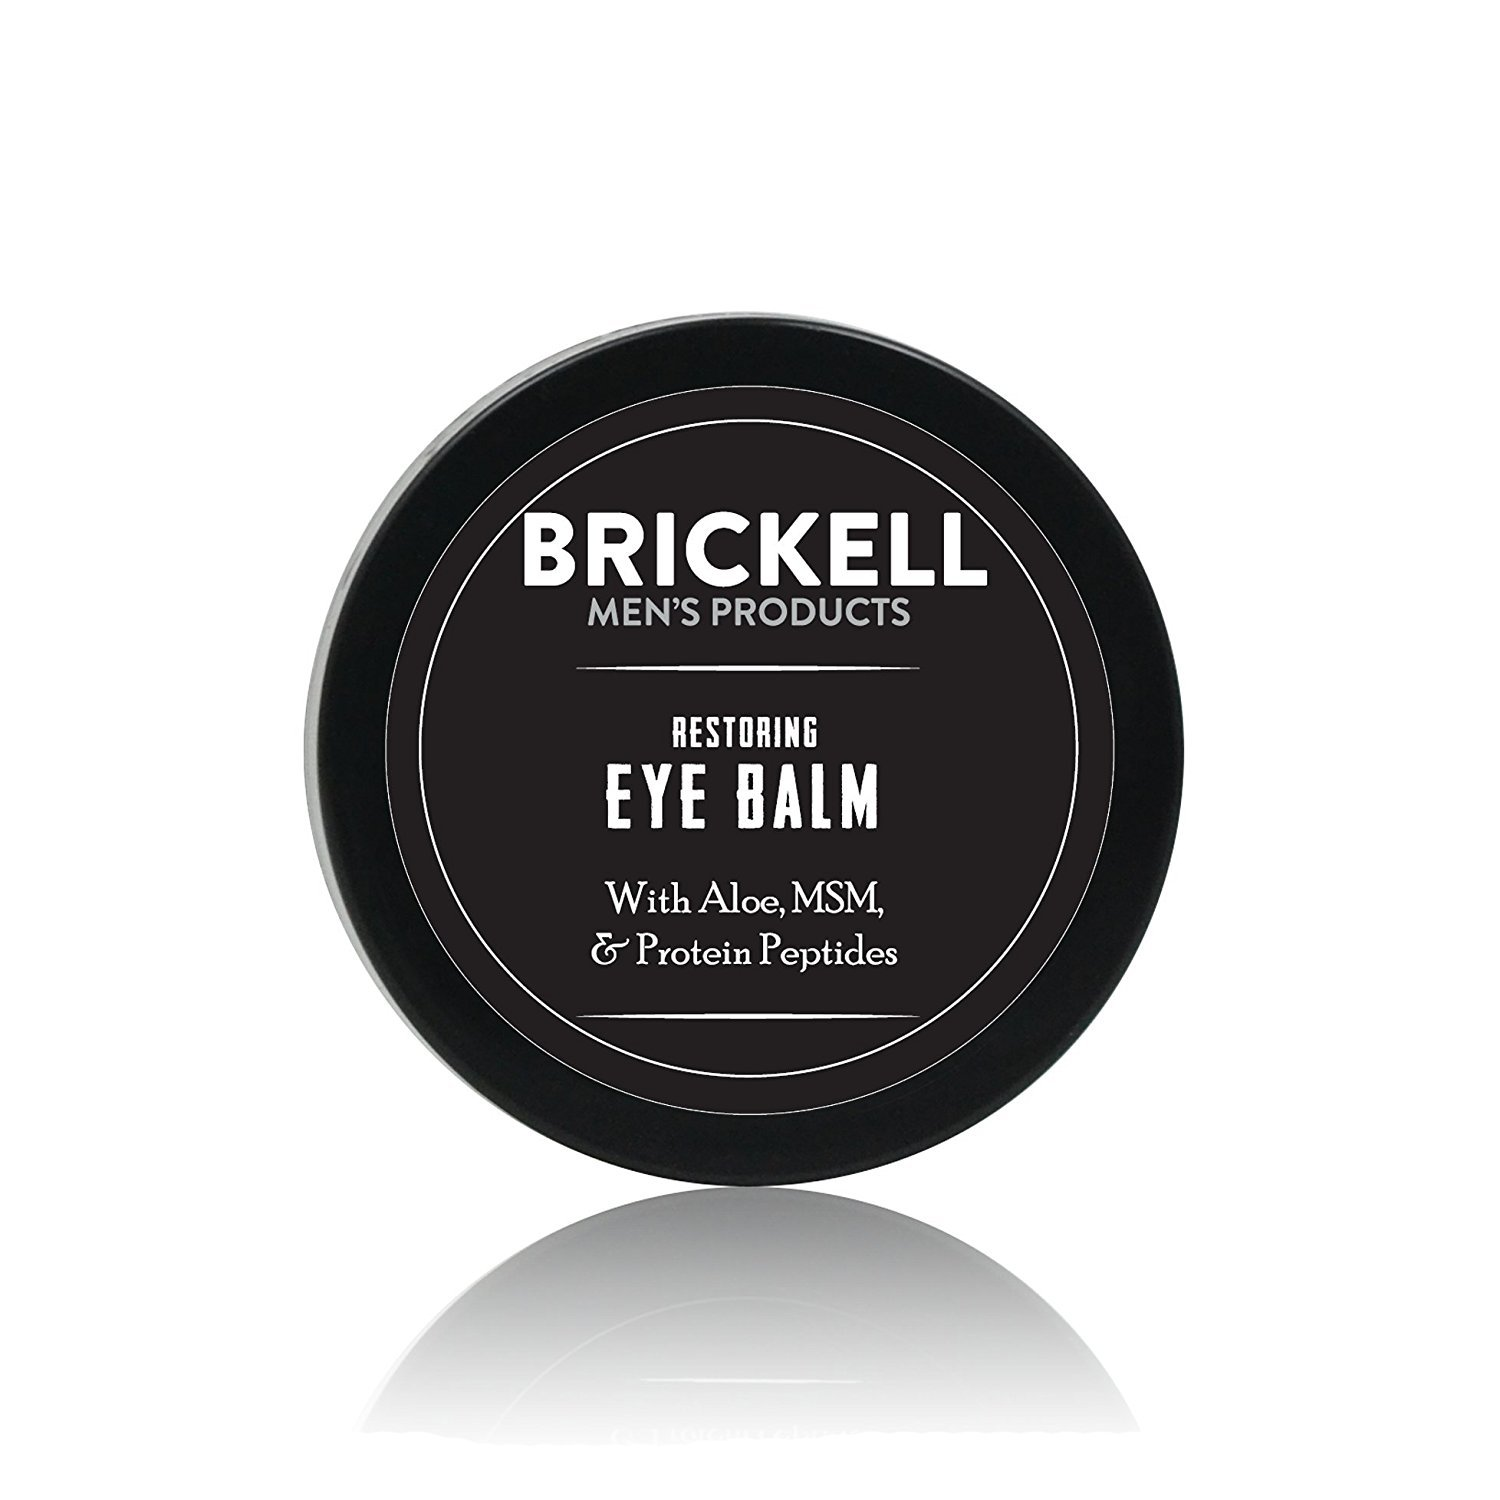 Brickell Men's Restoring Eye Cream for Men - Natural Anti Aging Eye Balm To Reduce Puffiness, Wrinkles, Dark Circles, Under Eye Bags - .5 oz Brickell Men's Products EB134